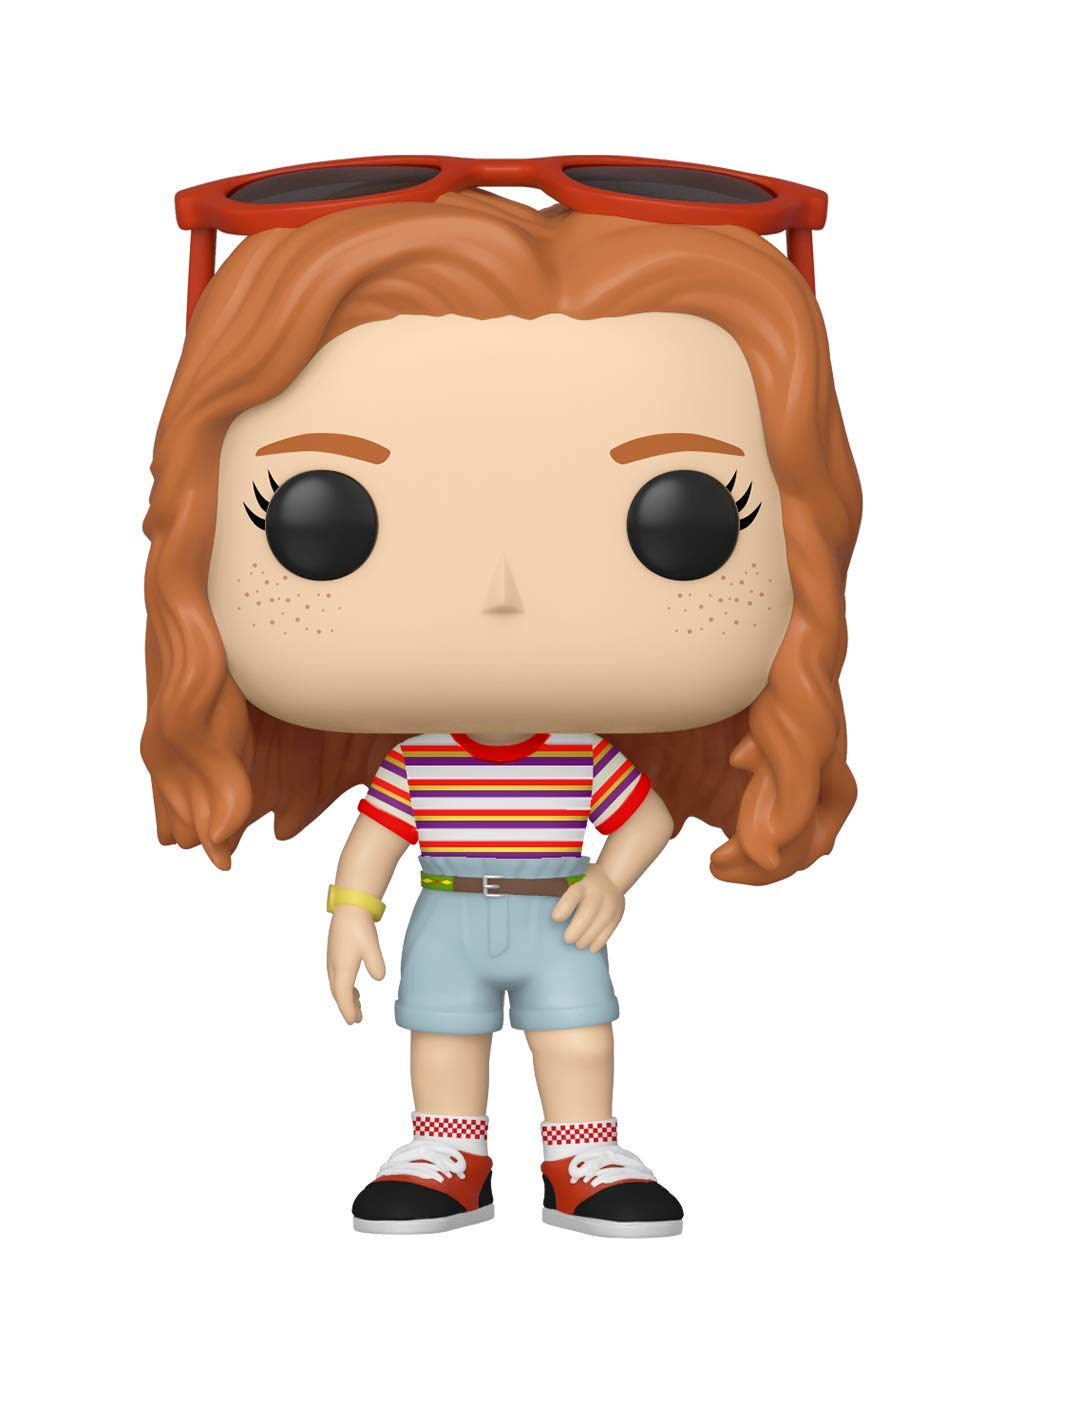 Funko Pop! Television: Stranger Things - Max (Mall Outfit) by Funko